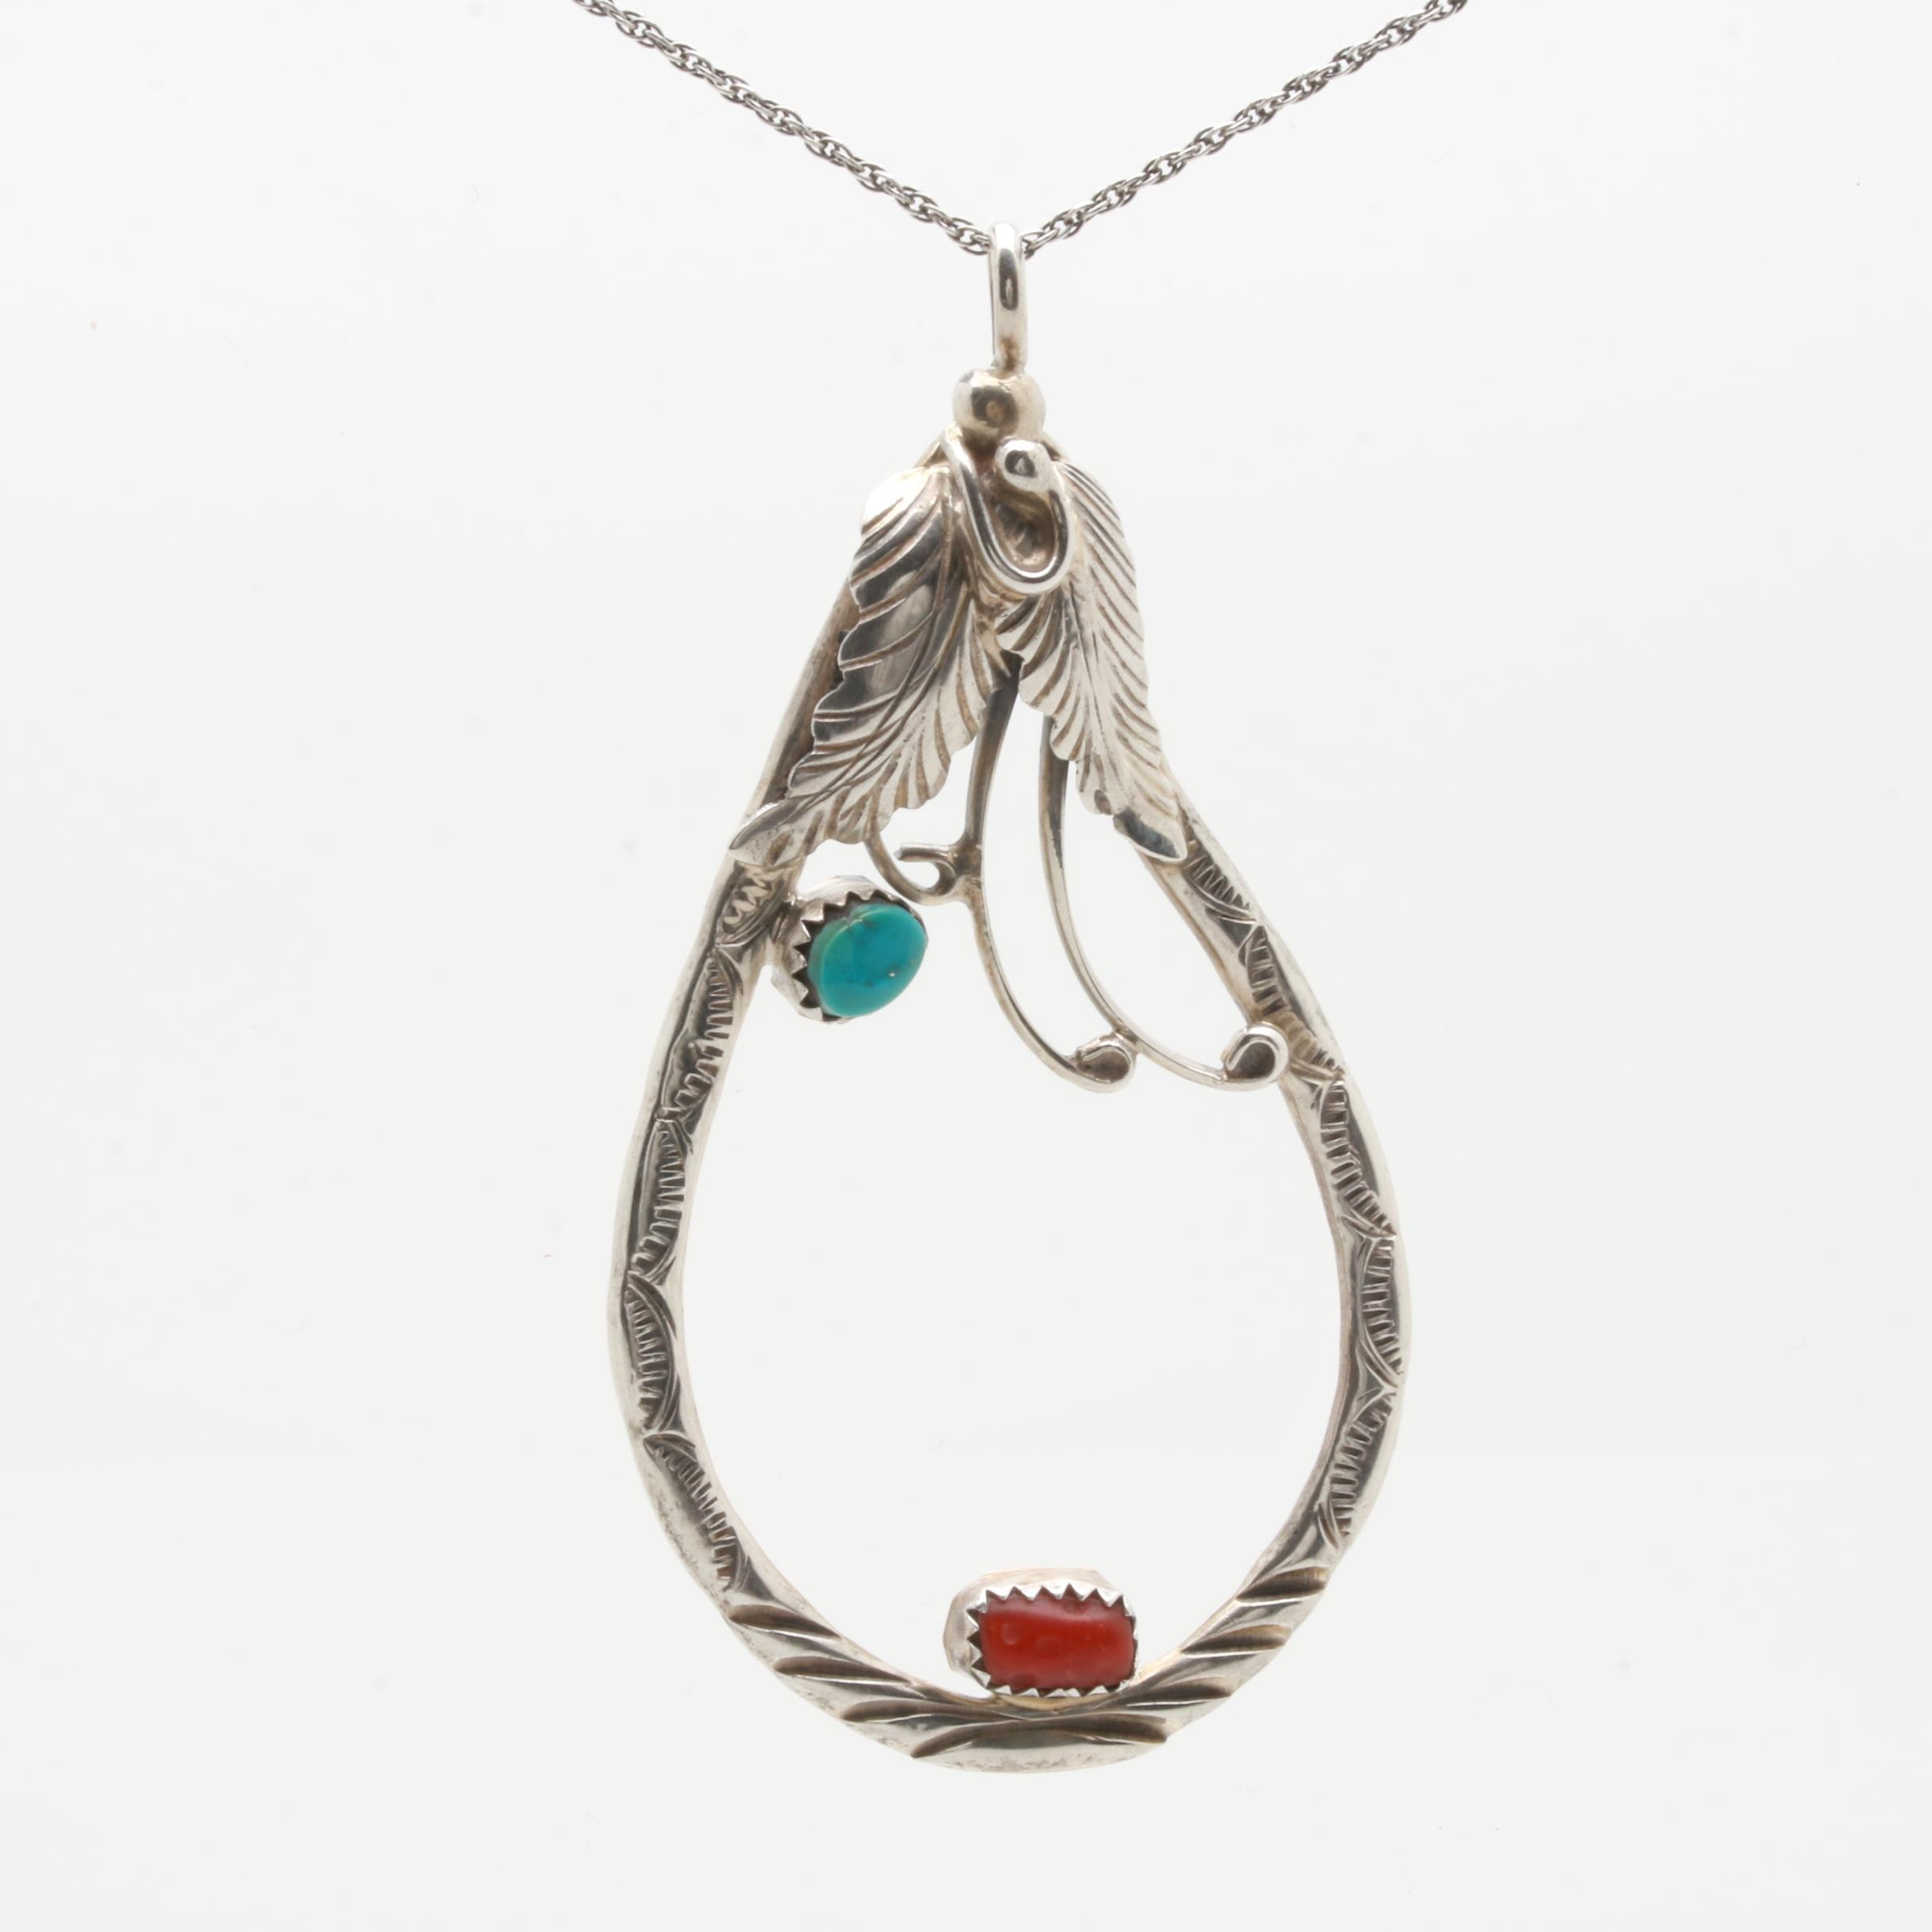 Southwestern Style Sterling Silver Turquoise and Coral Necklace